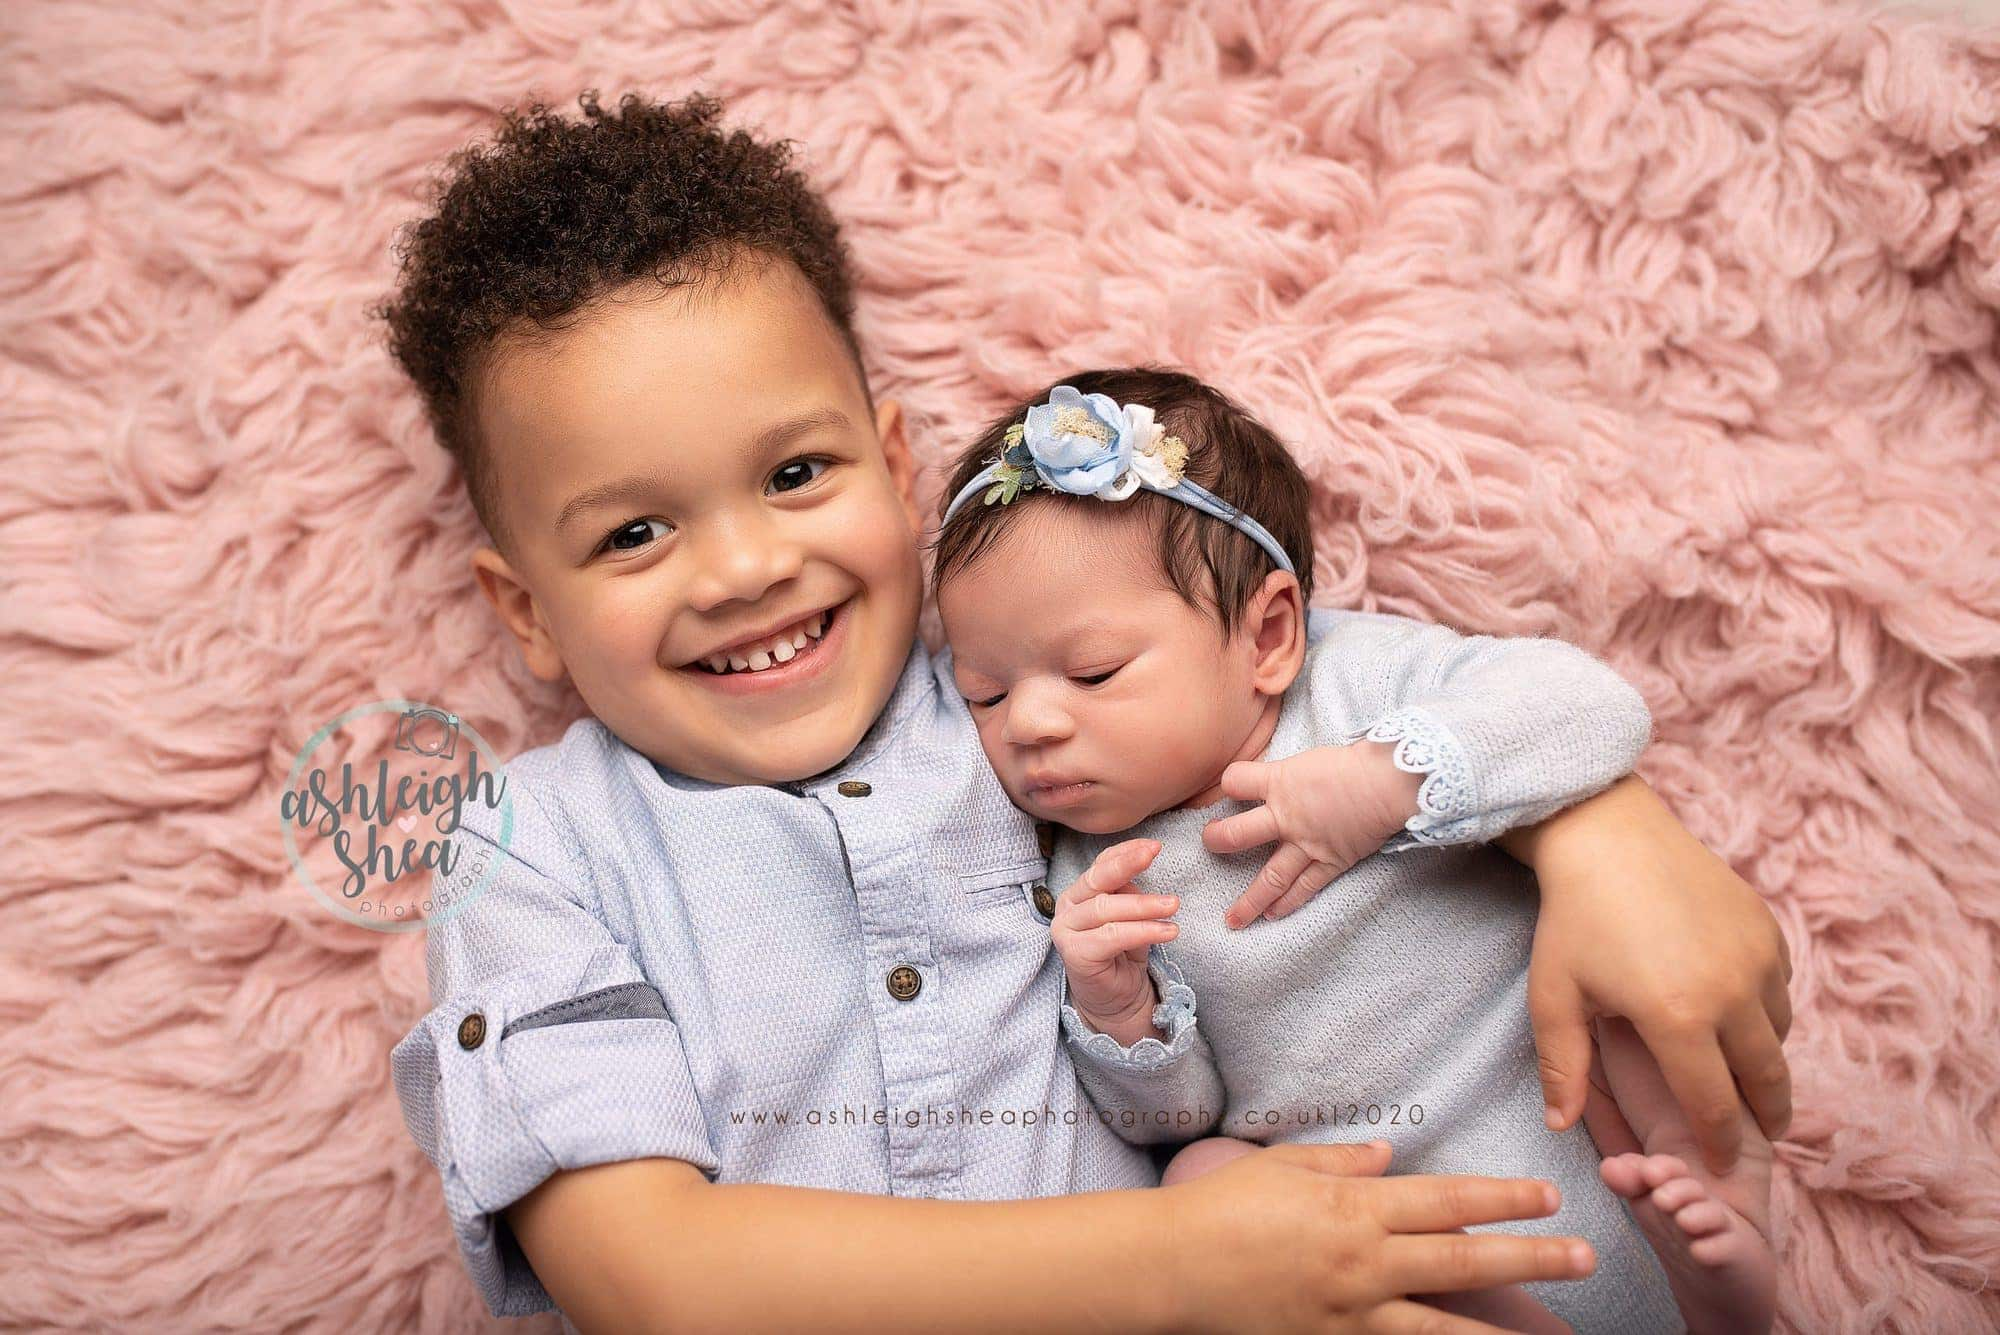 Siblings, Big Brother, Little Sister, Pink, Blue, Ashleigh Shea Photography, Newborn Pictures, Bromley,